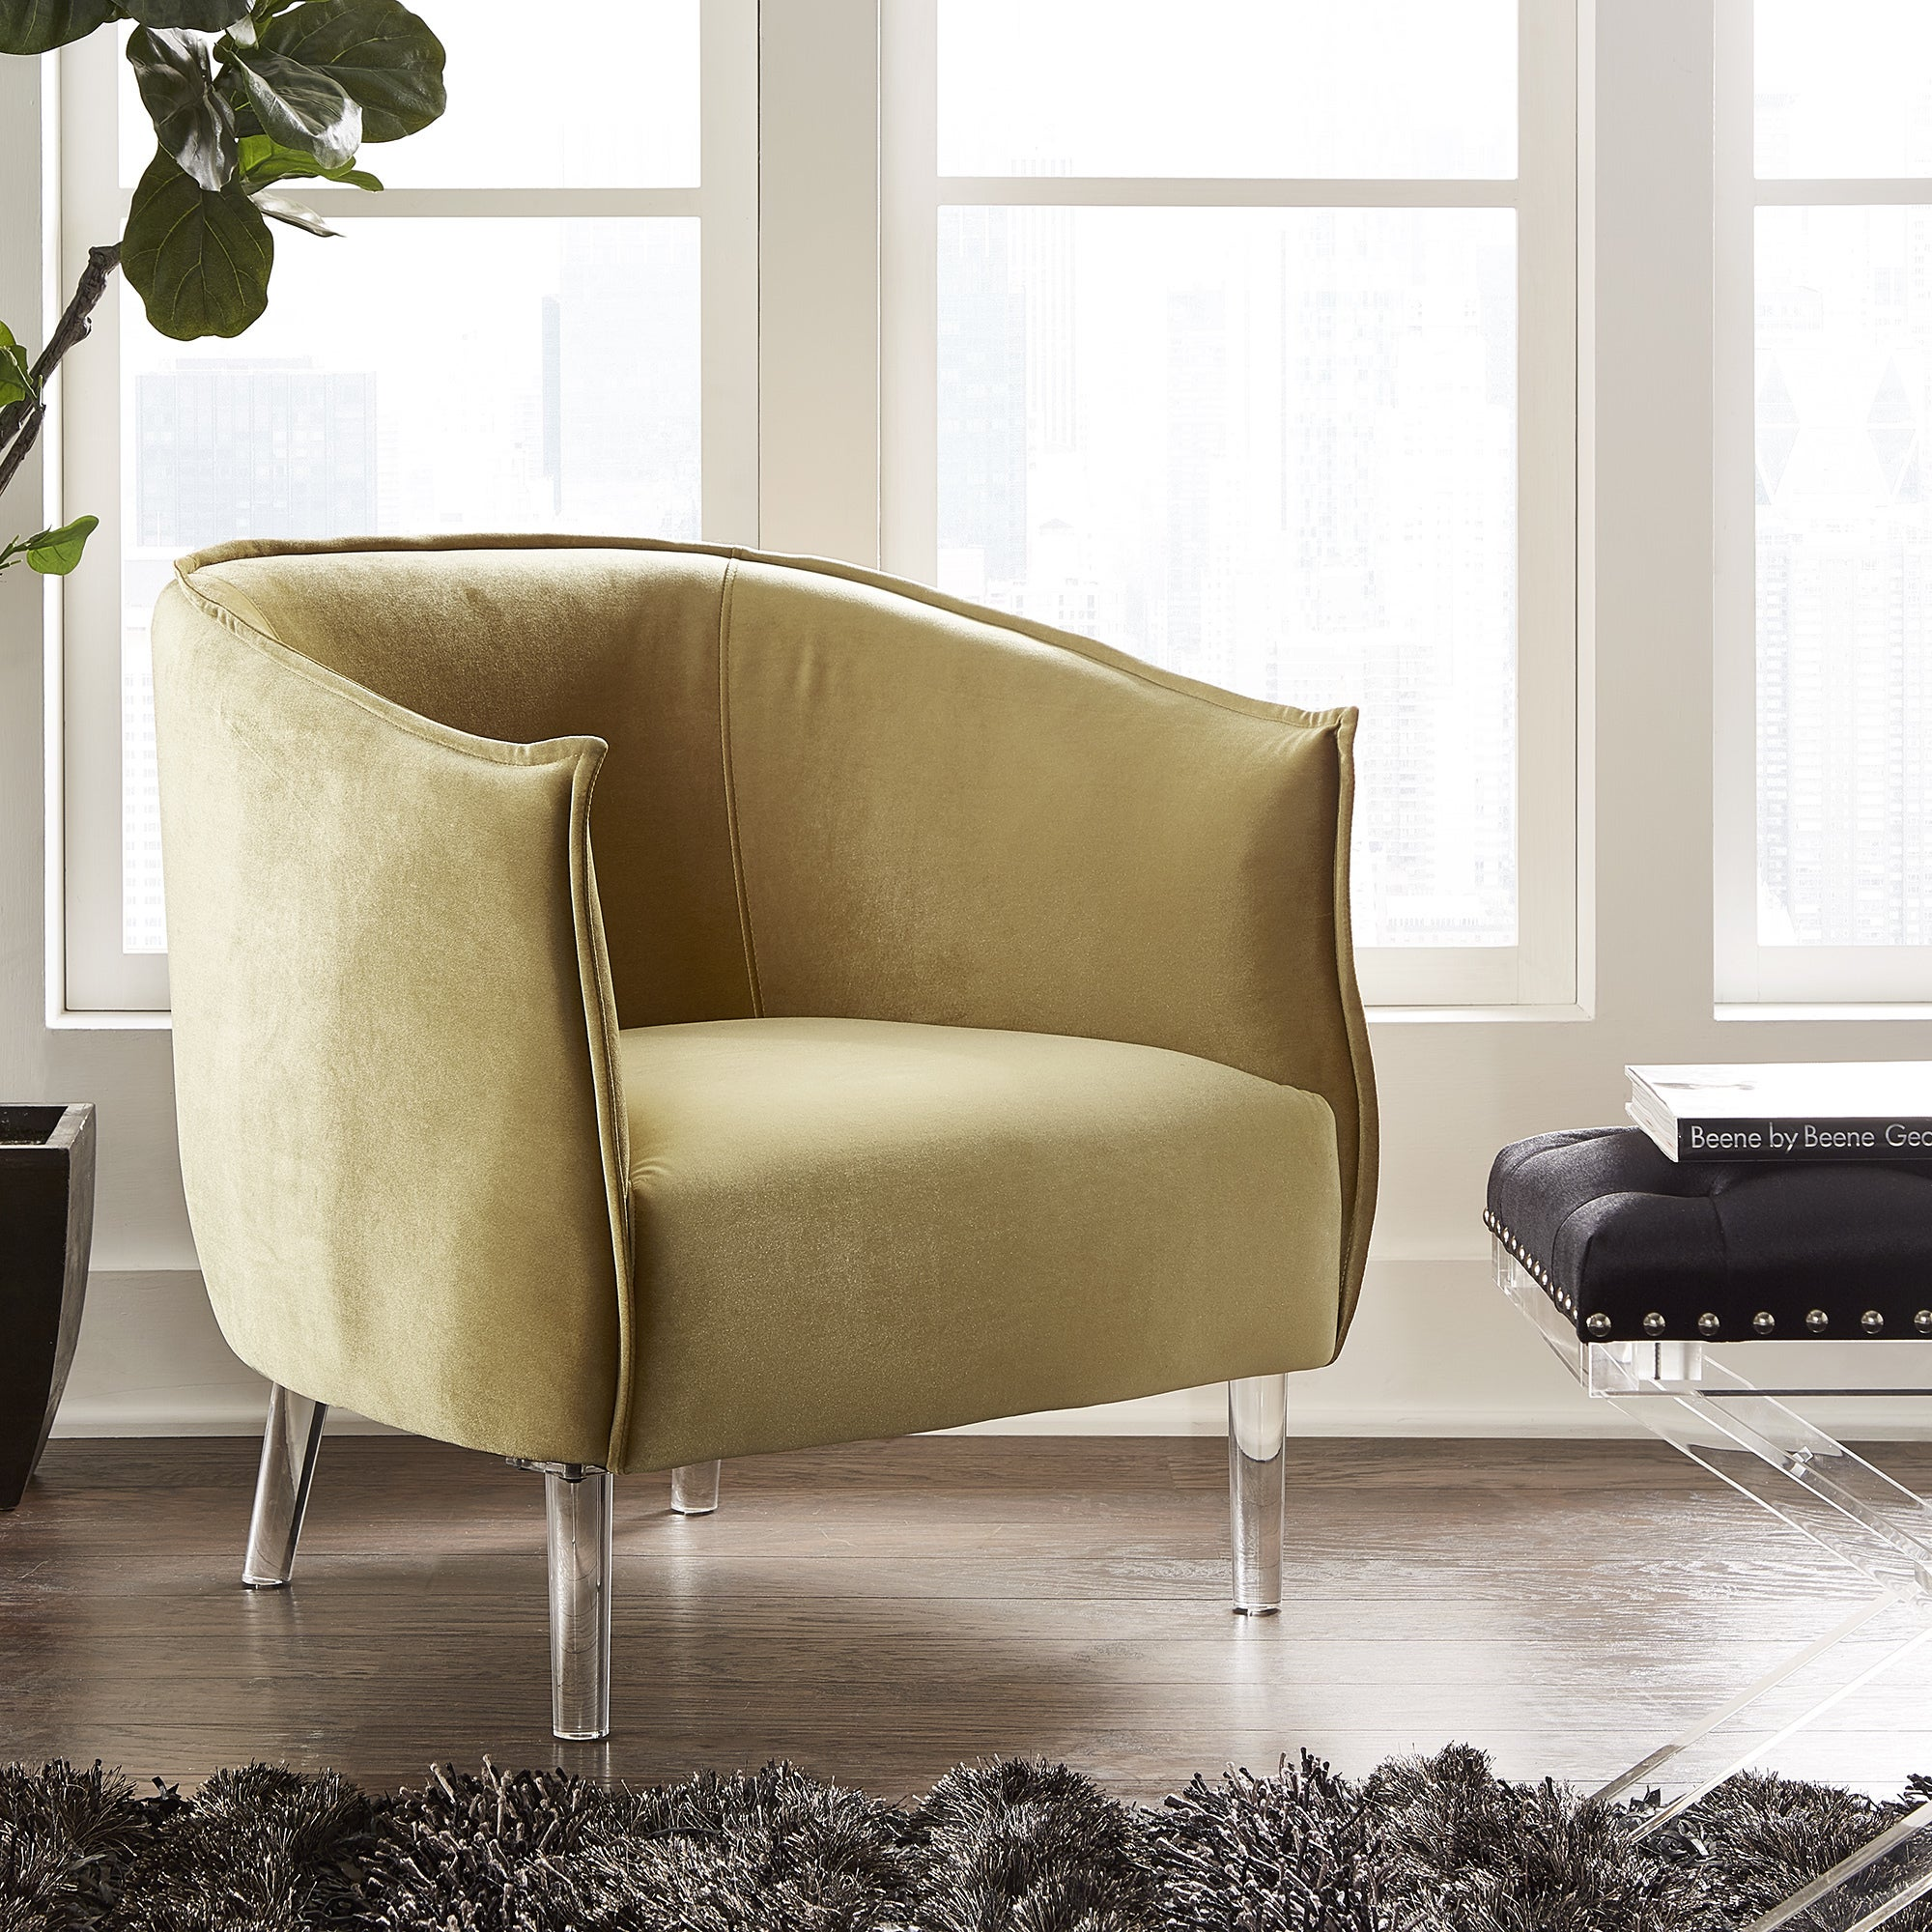 Vianne Velvet Curved Back Acrylic Leg Accent Chair by iNSPIRE Q Bold - Free  Shipping Today - Overstock.com - 21223238